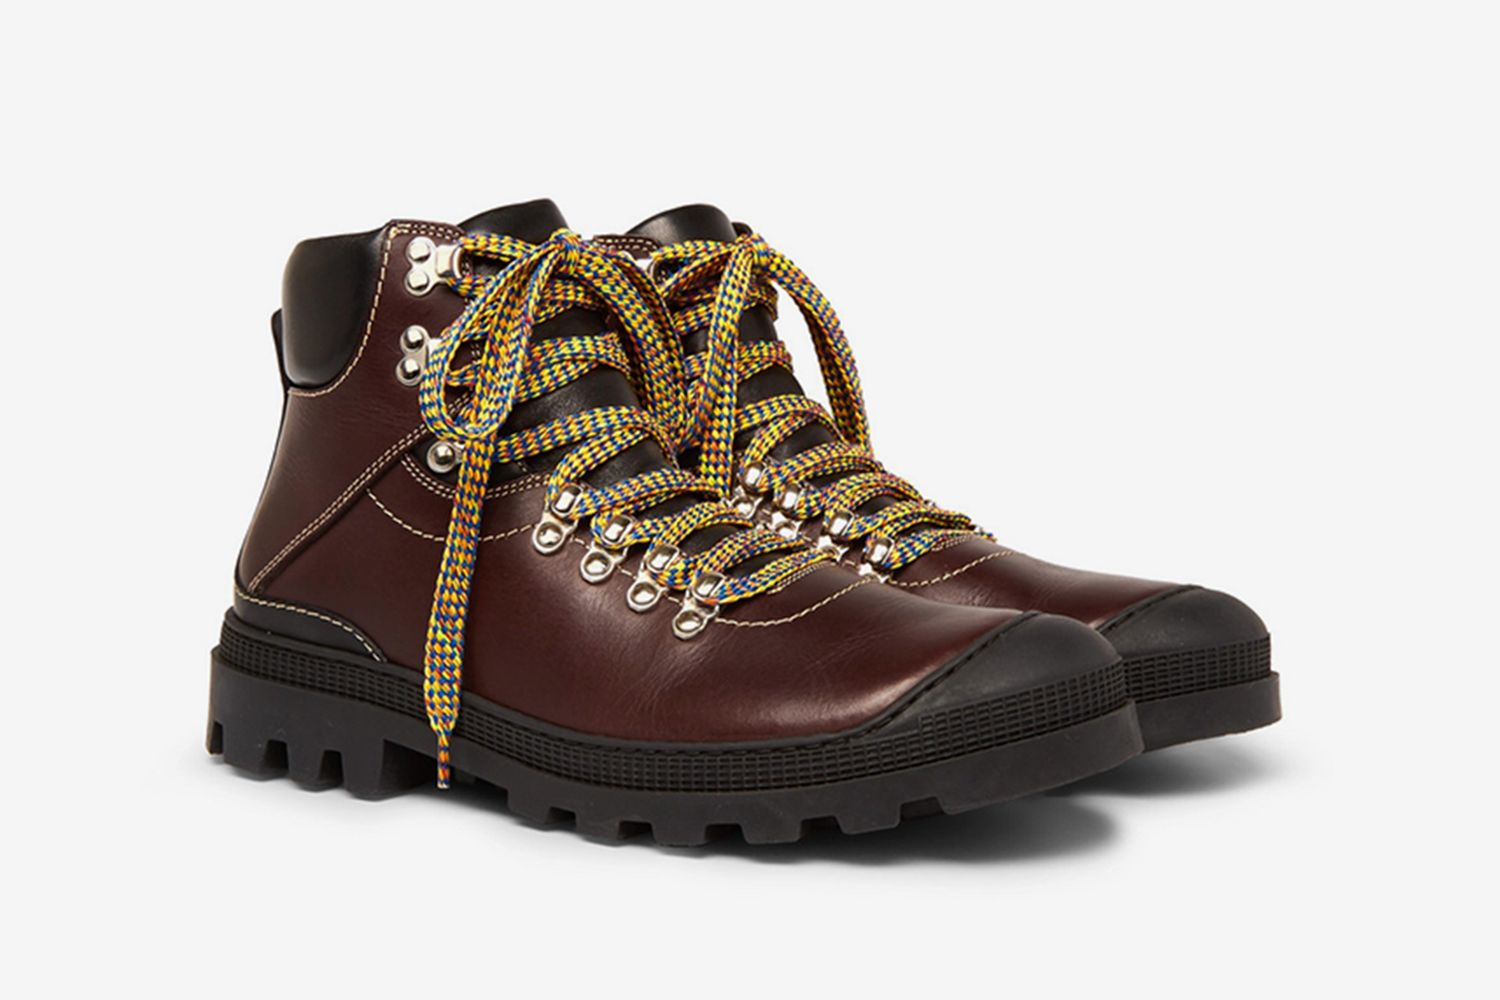 Rubber Trimmed Leather Boots